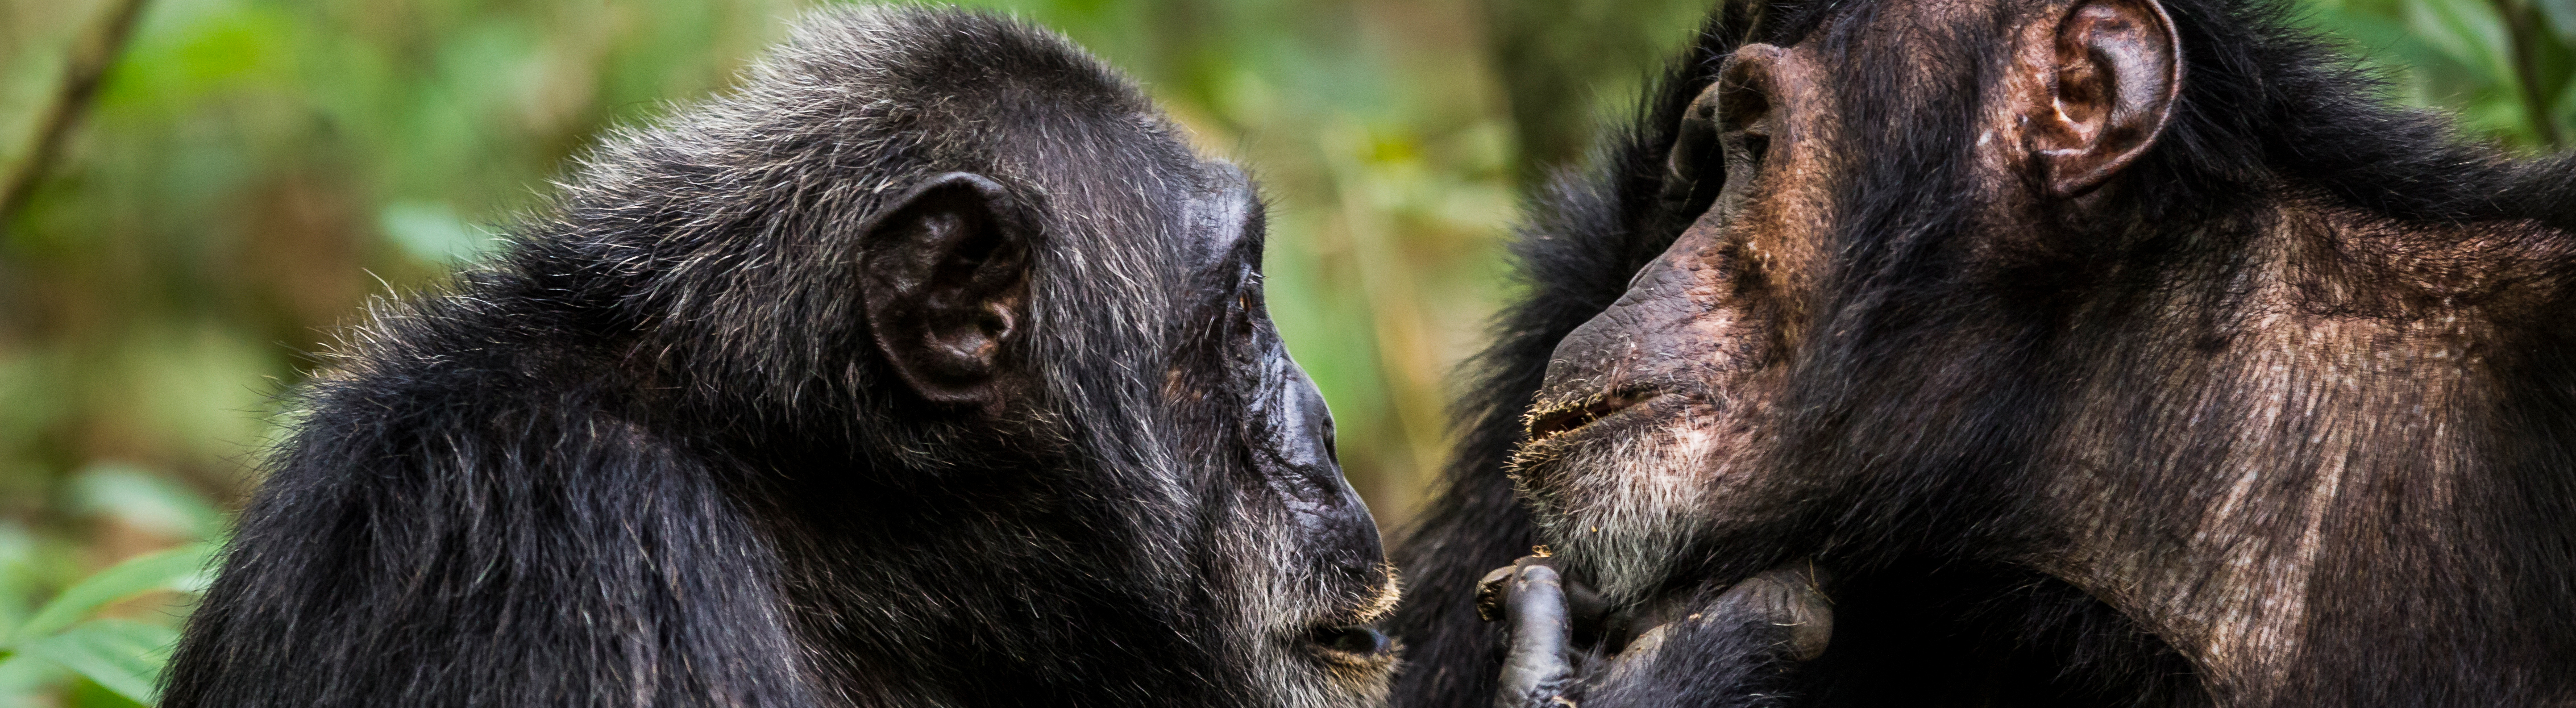 Chimpanzees (Pan troglodytes schweinfurthi) dominant male on left is the leader of the group, grooming one of his lieutenants, Kibale NP, Uganda